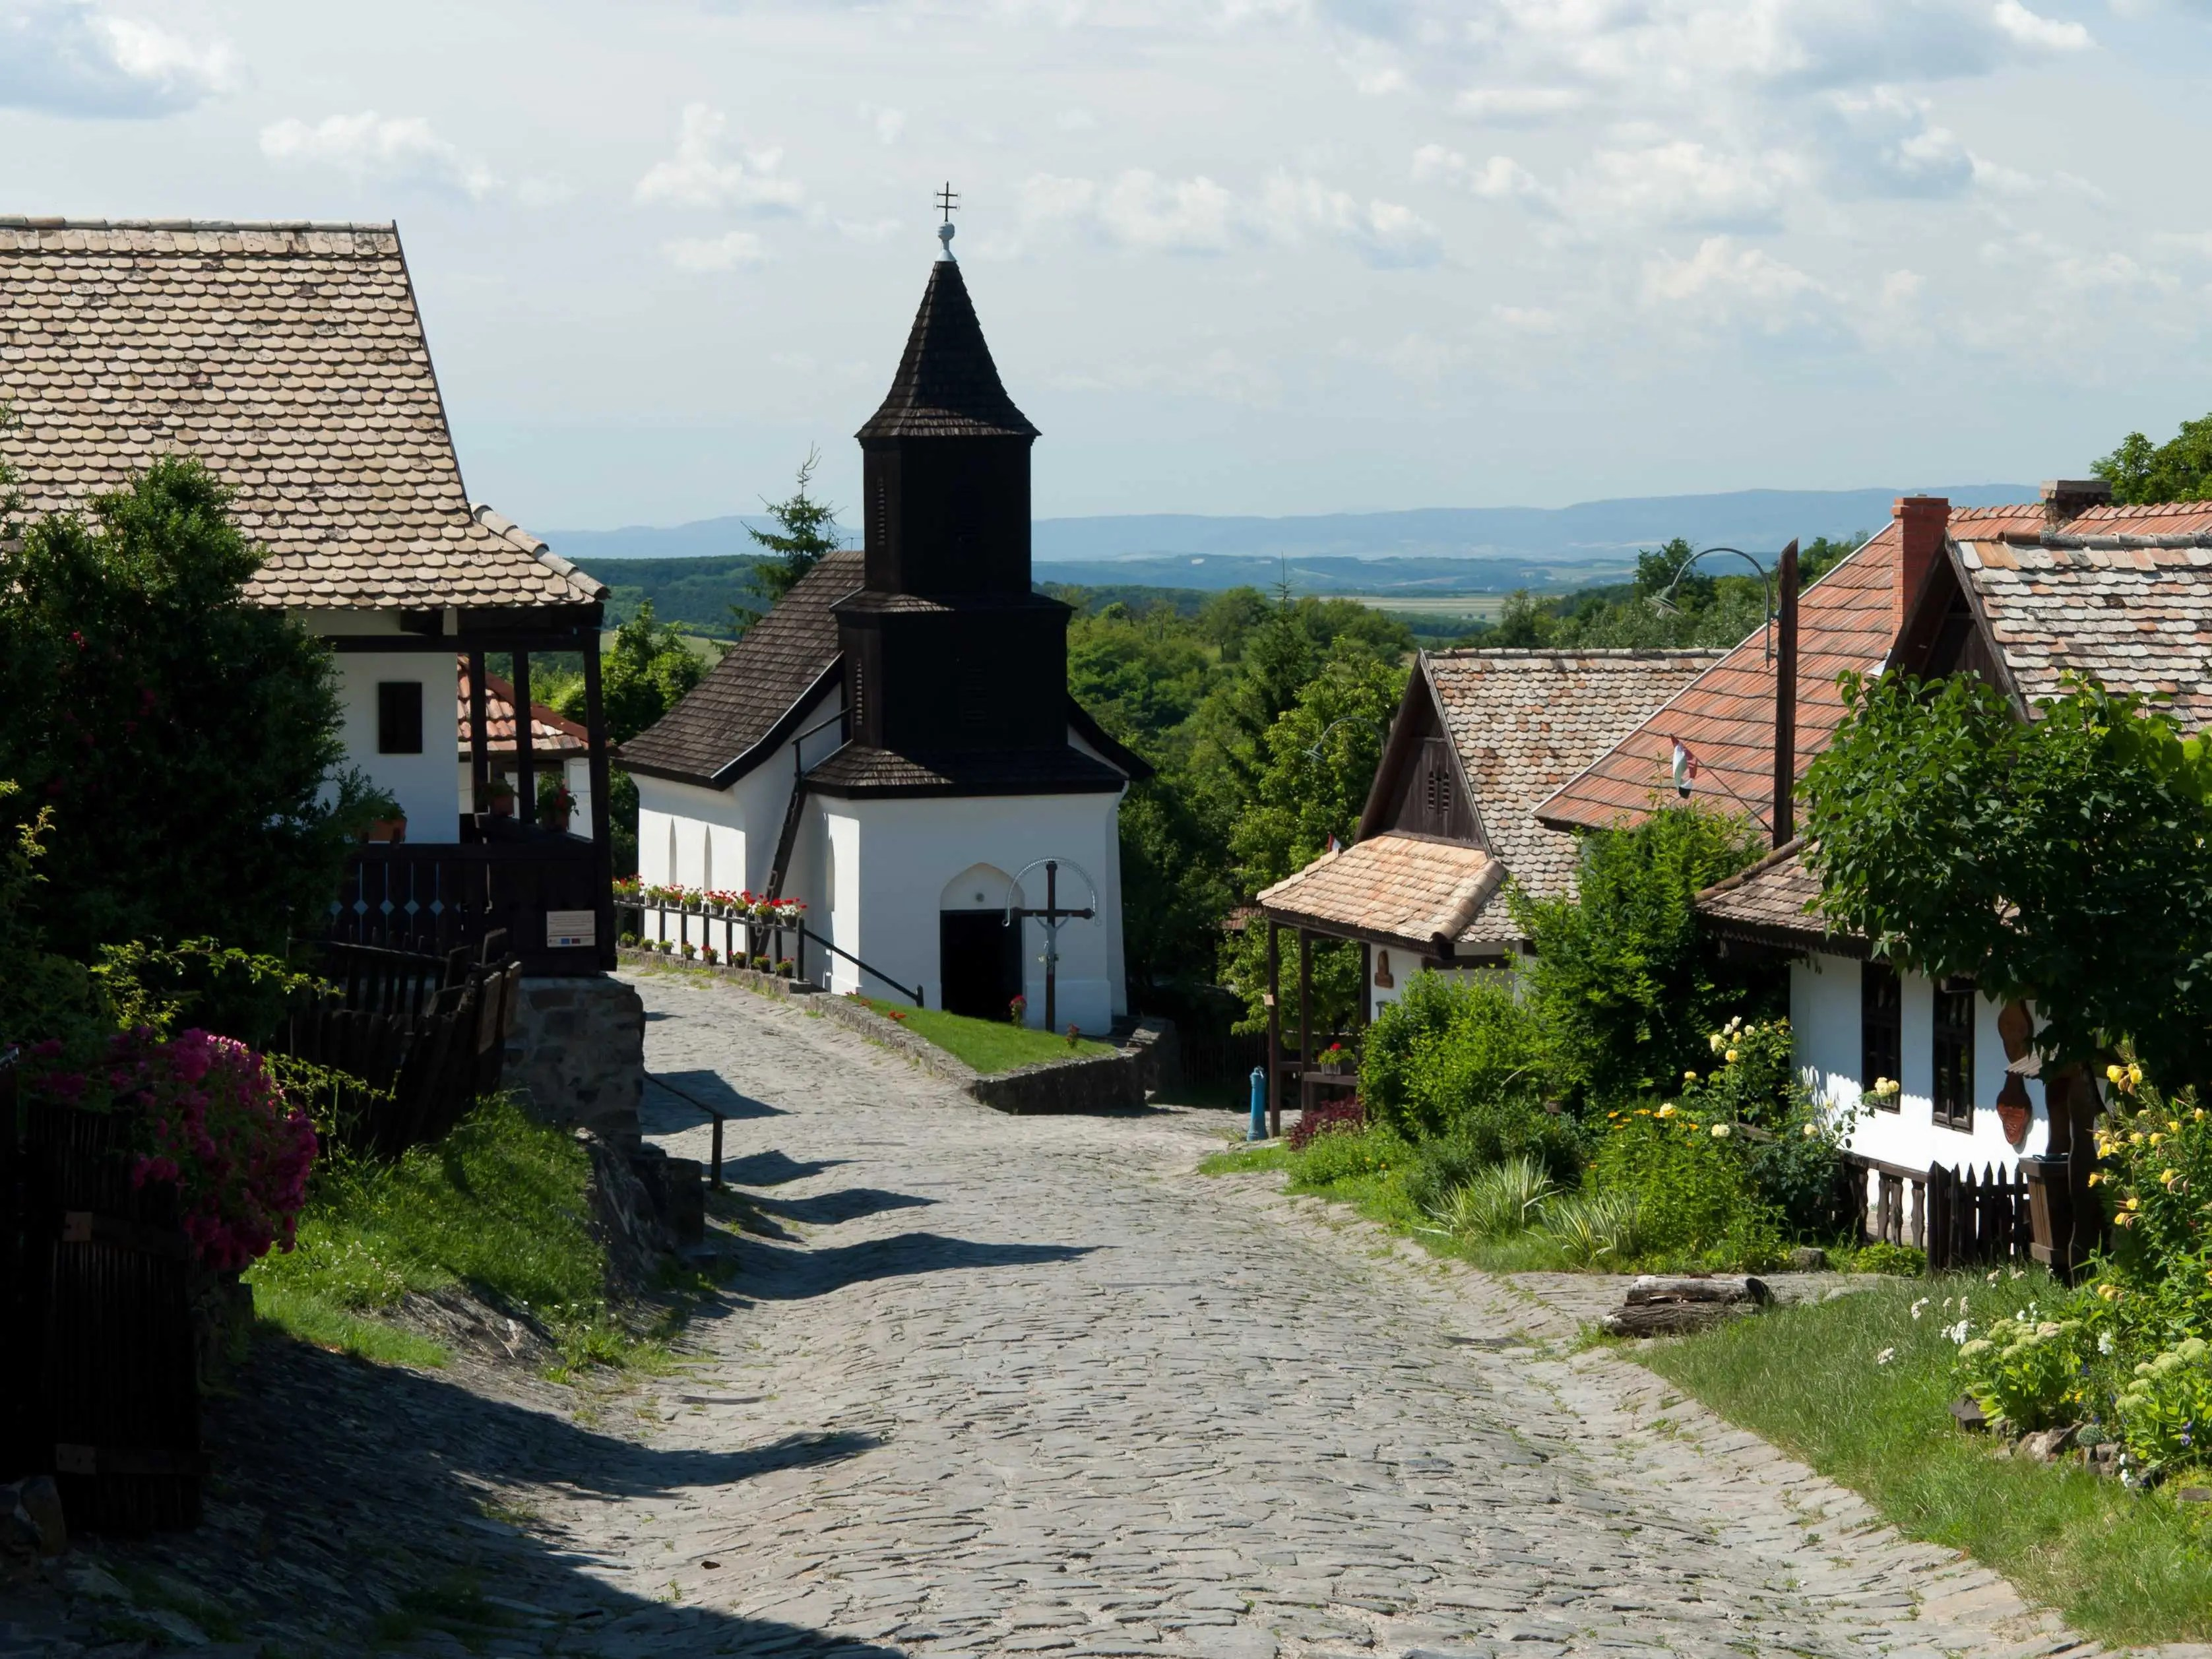 """UNESCO describes Hollokö, located in Nógrád in northern Hungary, as a """"living example of rural life before the agricultural revolution of the 20th century,"""" thanks to its wide array of orchards, vineyards, meadows, woods, and medieval castle ruins dating back to 1310."""